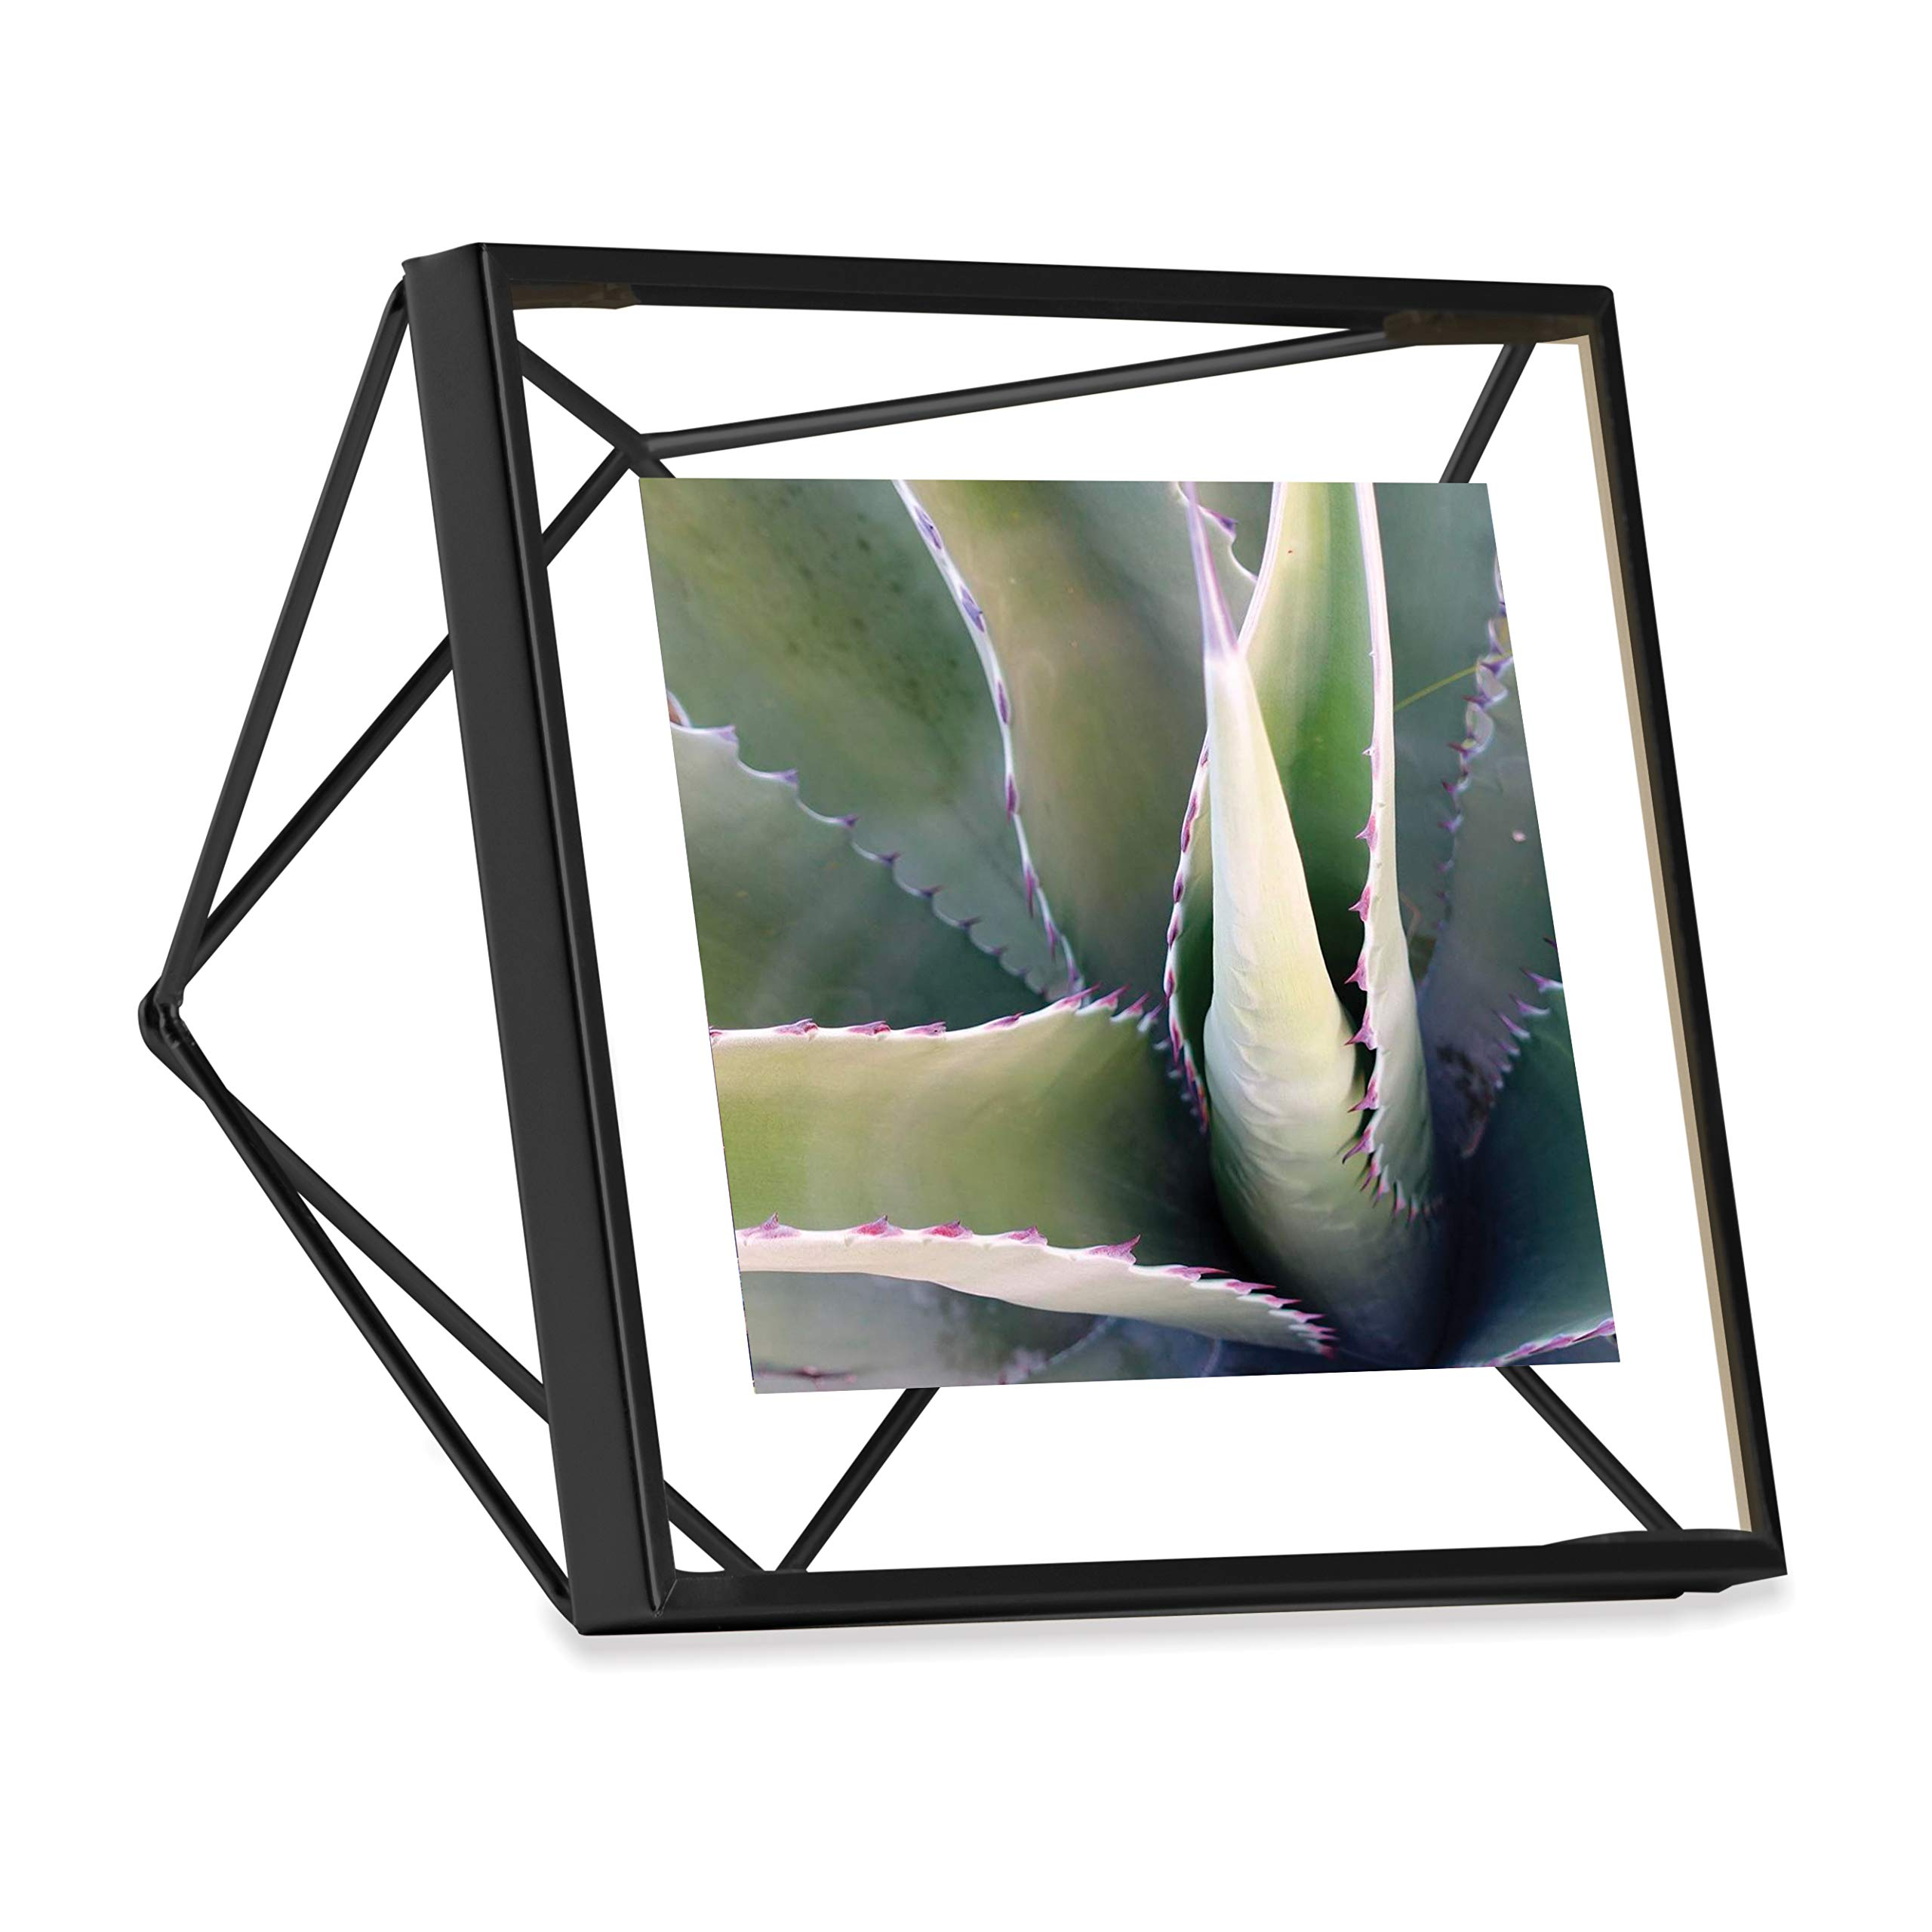 Umbra Prisma Picture Frame, 4x4 Photo Display for Desk or Wall, Black by Umbra